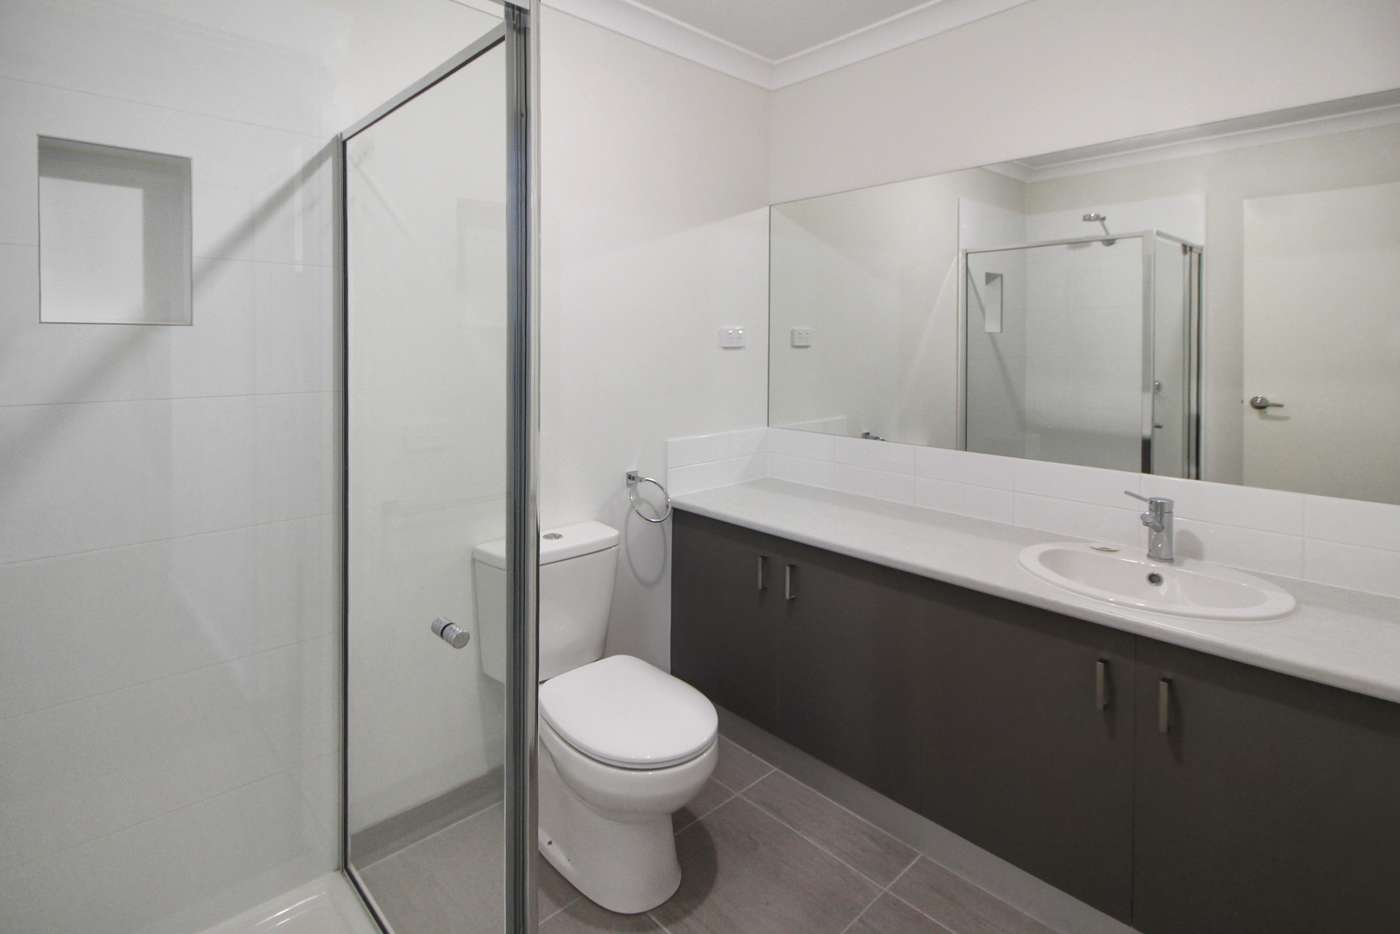 Sixth view of Homely house listing, 5B Hill Park Place, Highton VIC 3216